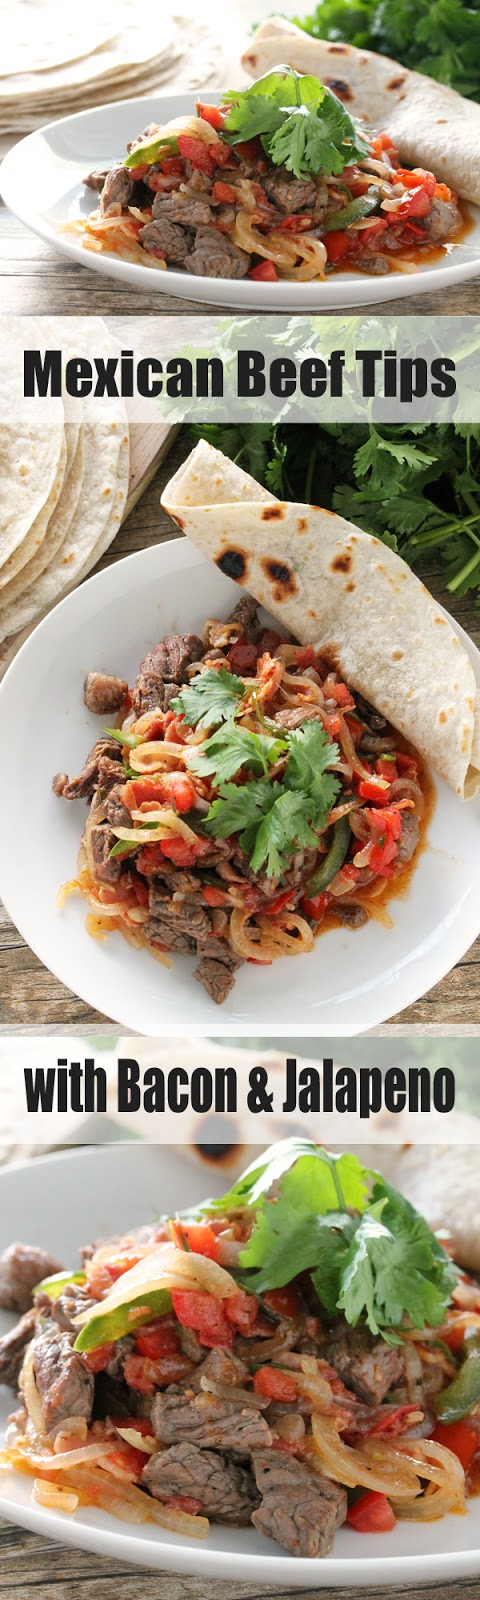 Mexican Beef Tips with Bacon and Jalapeno